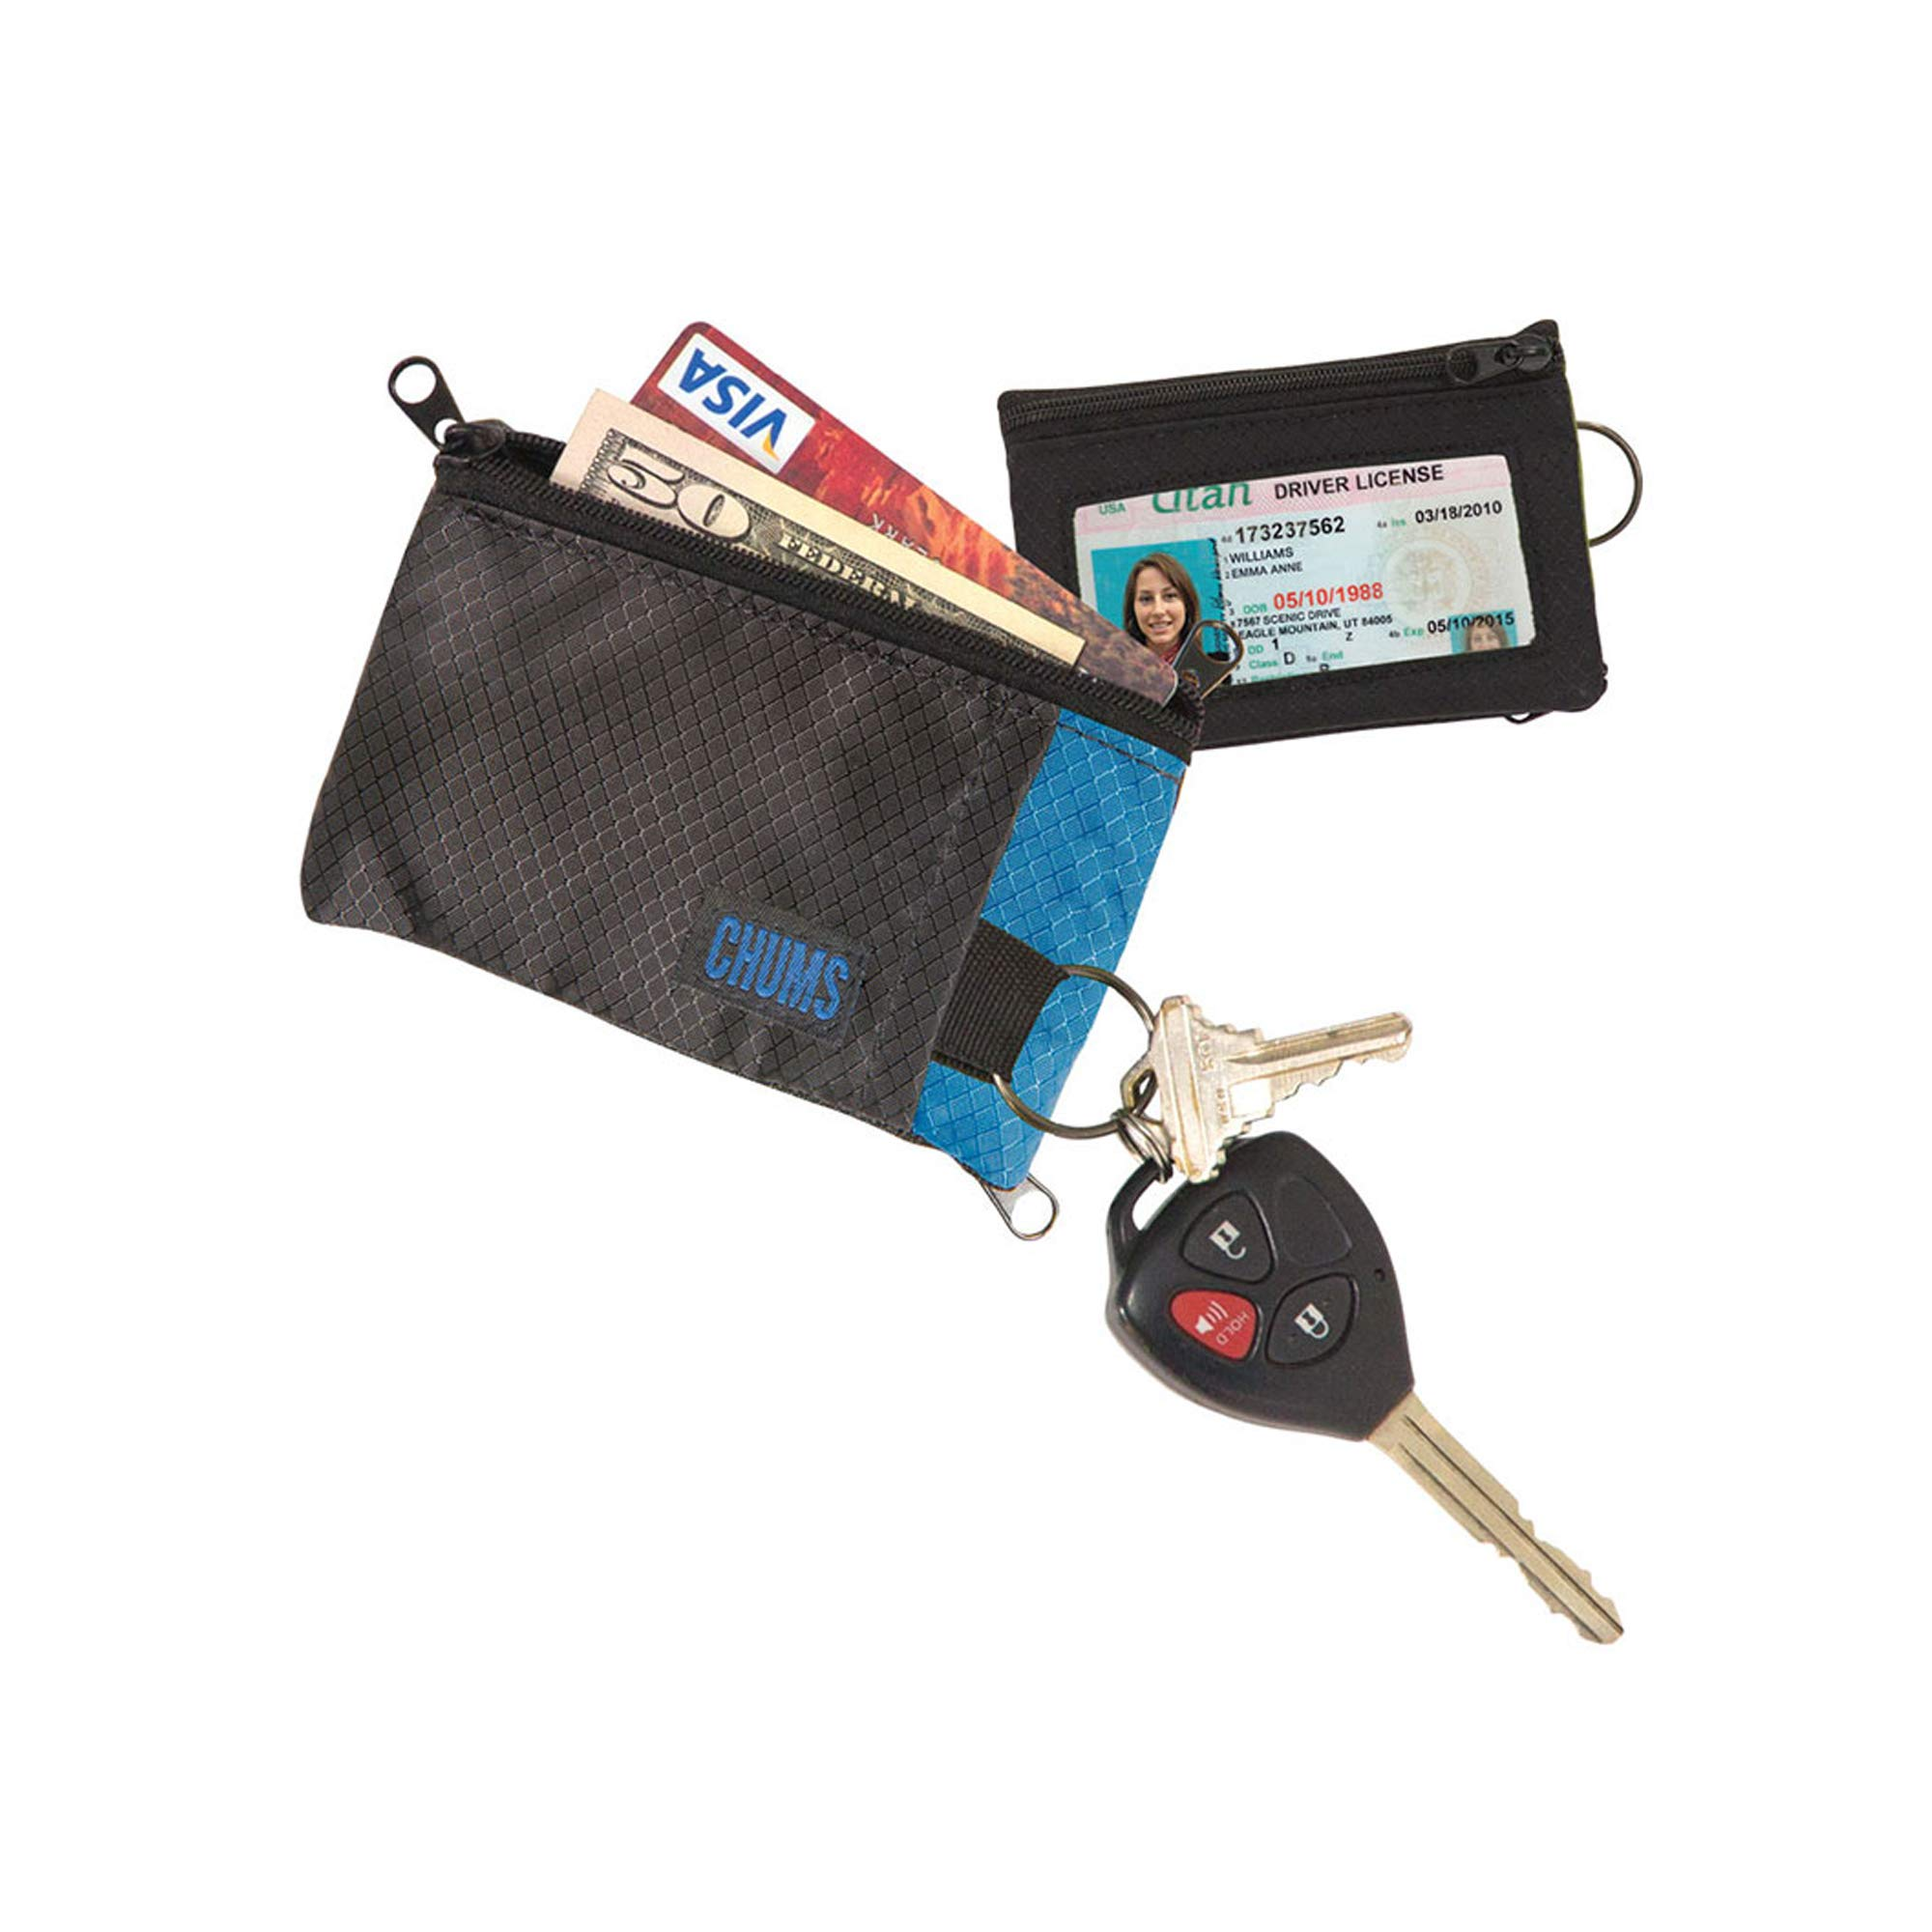 Chums Surfshort Wallet Ocean Blue by Chums (Image #1)